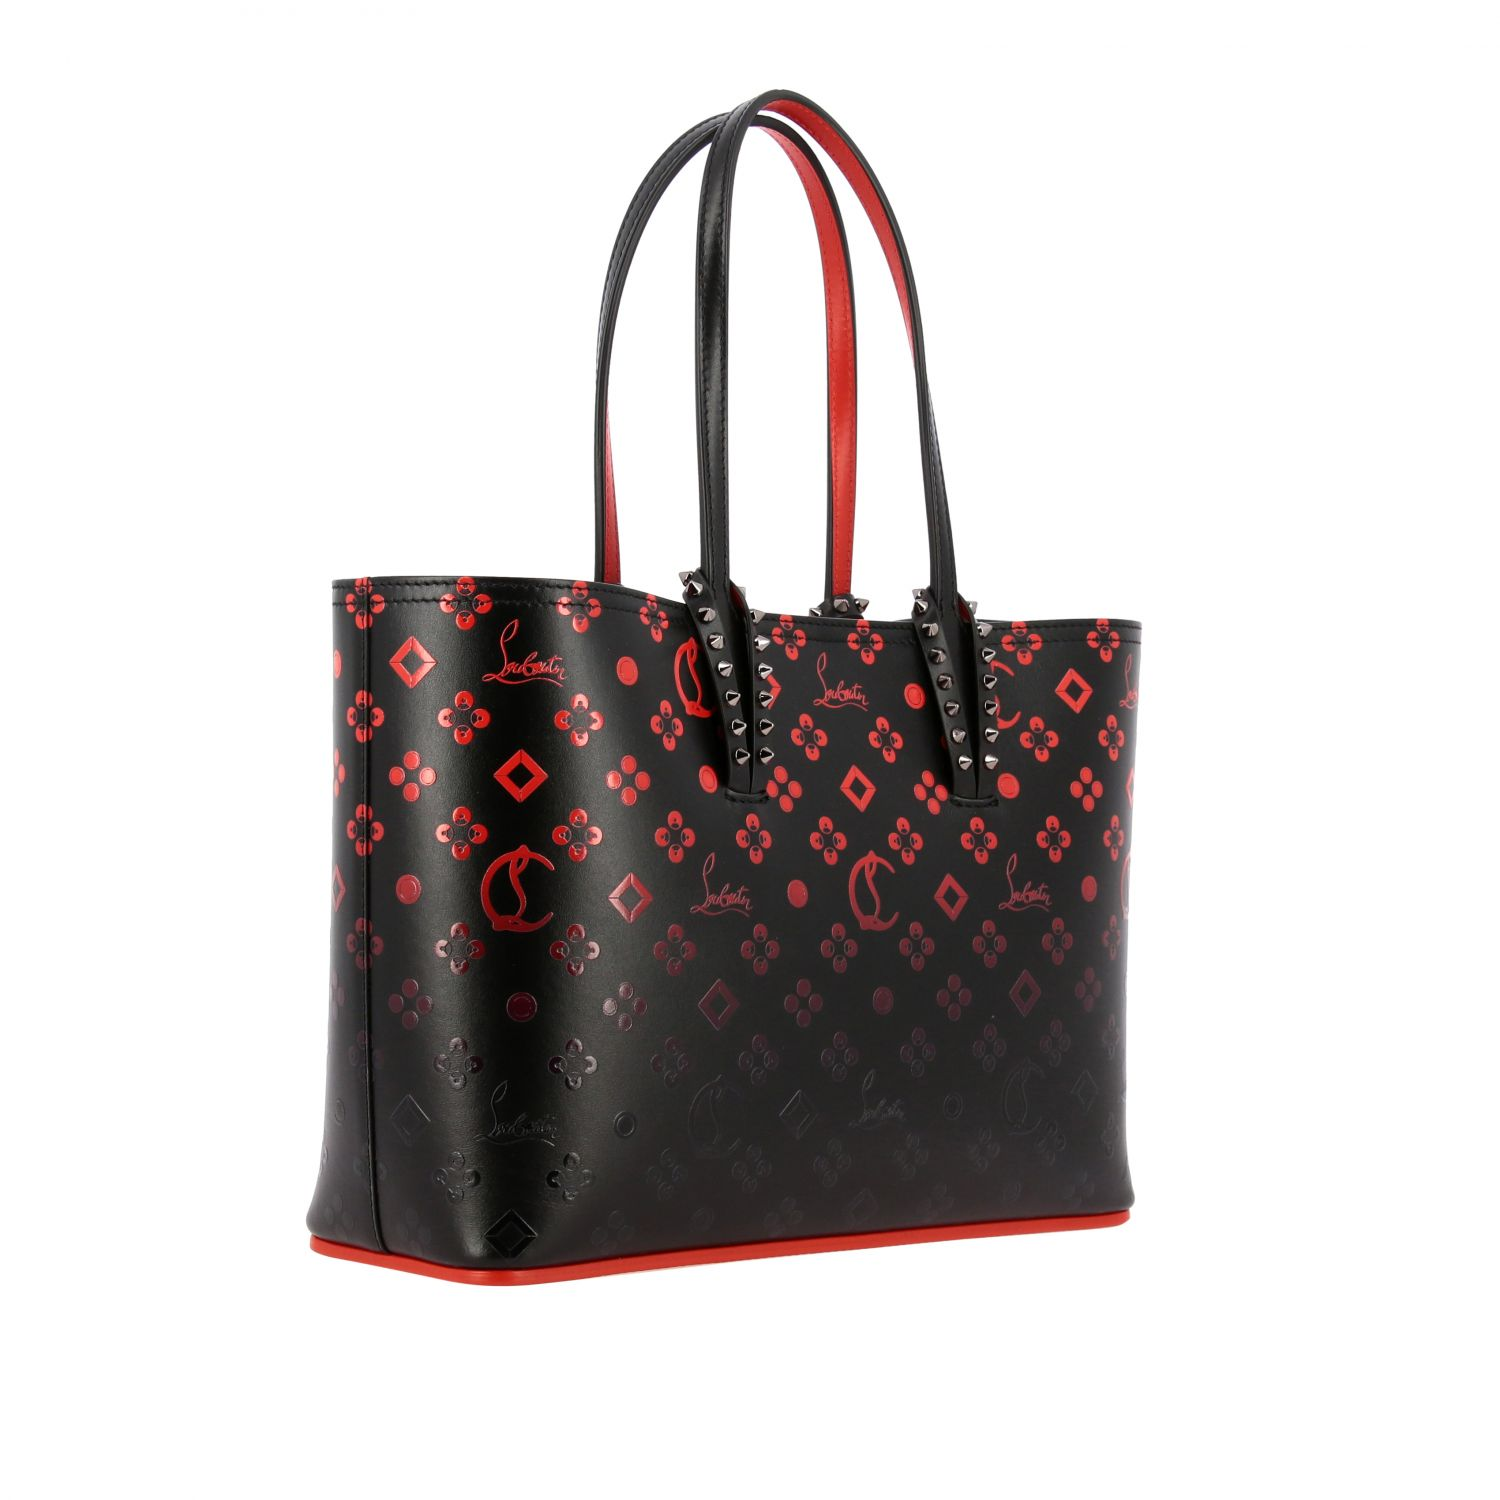 official images 100% genuine online retailer Shoulder Bag Christian Louboutin Women | Shoulder Bag Women ...